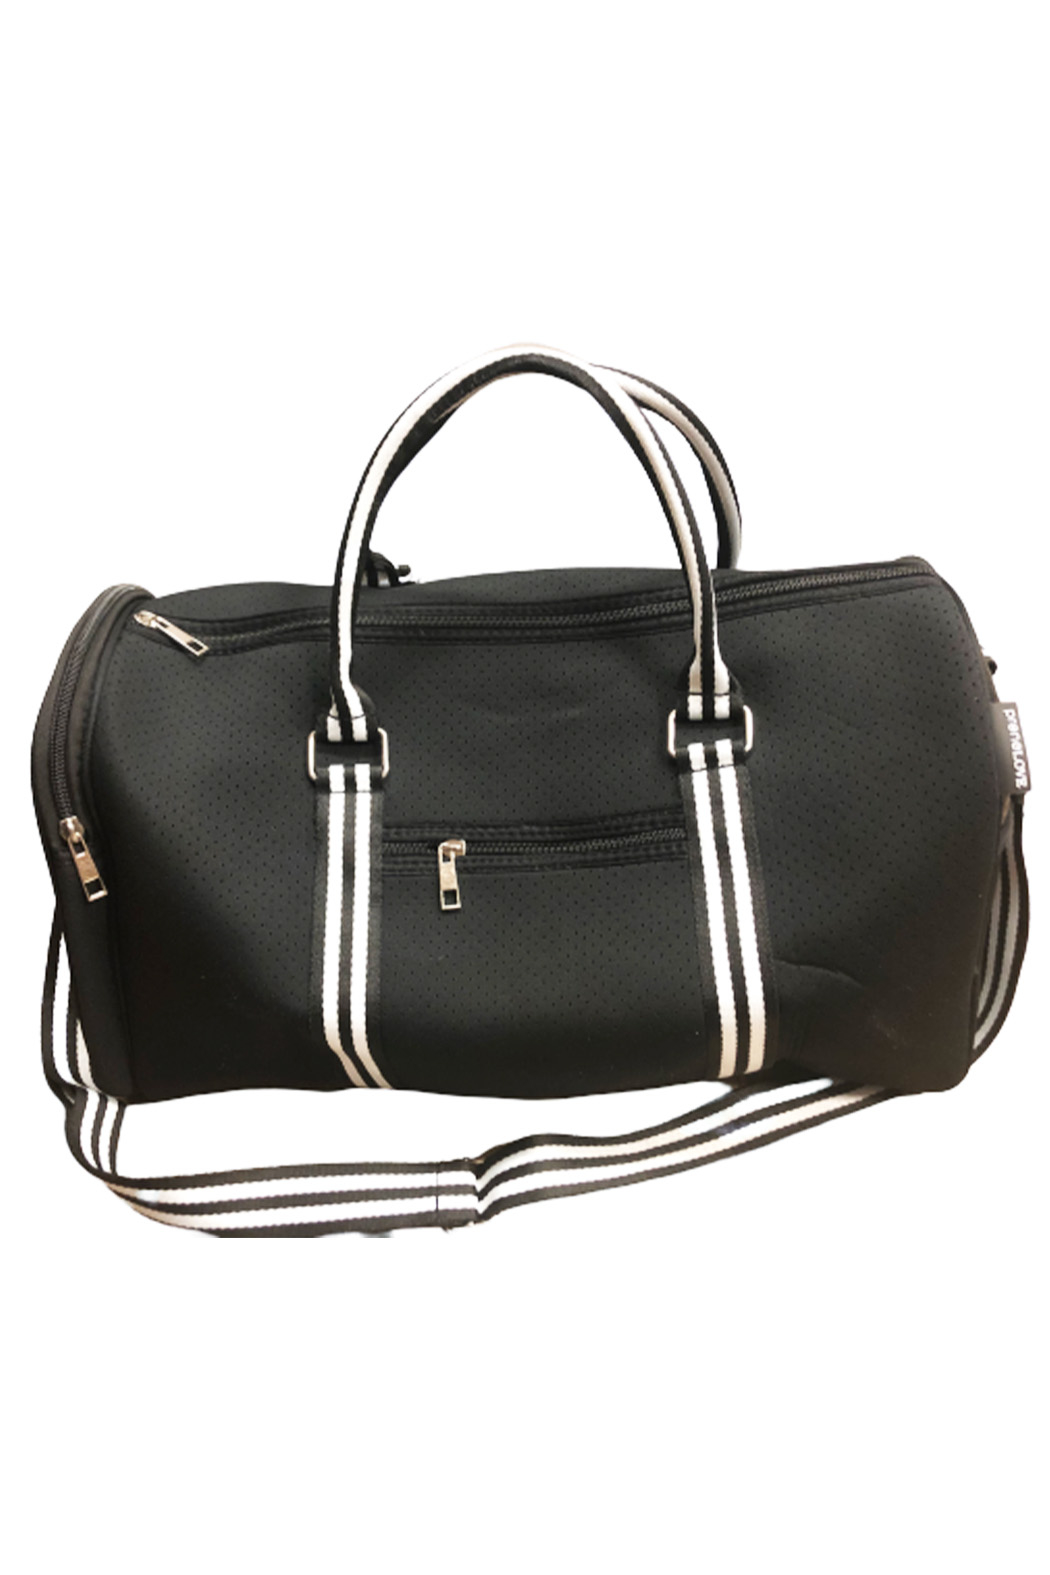 PreneLove Duffle Black Pearl - Front Cropped Image